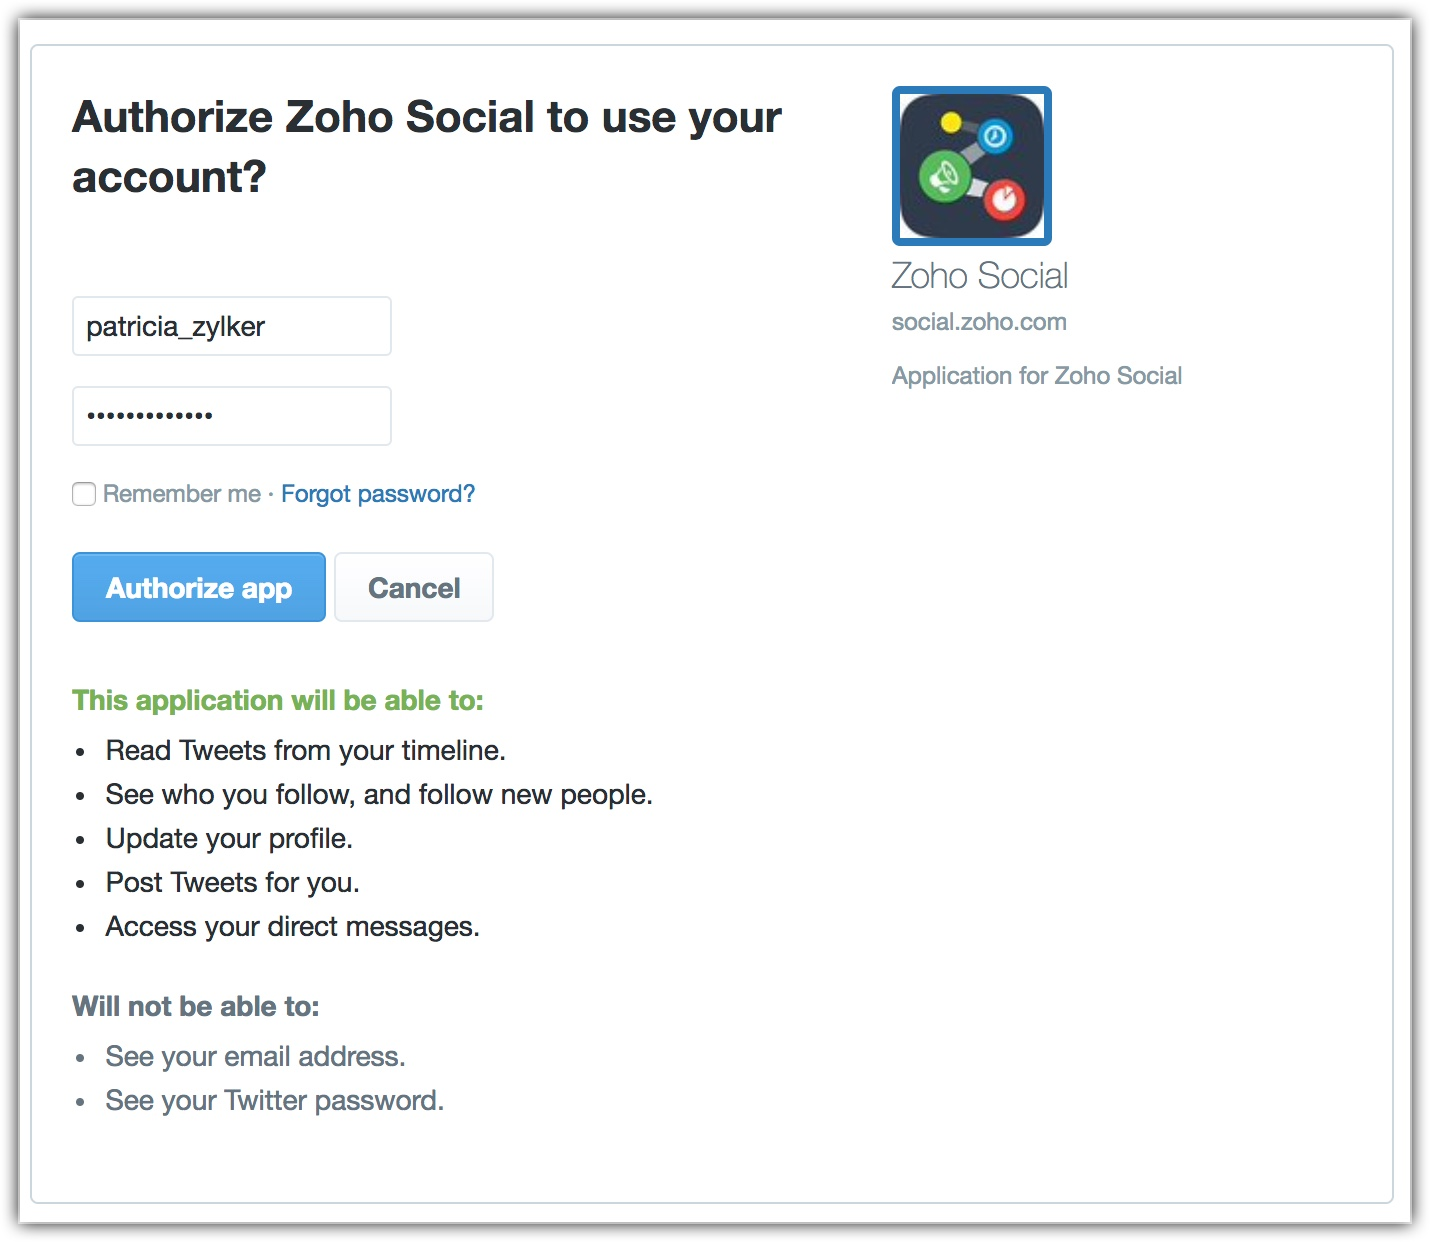 Authorize Zoho Social to use your Account